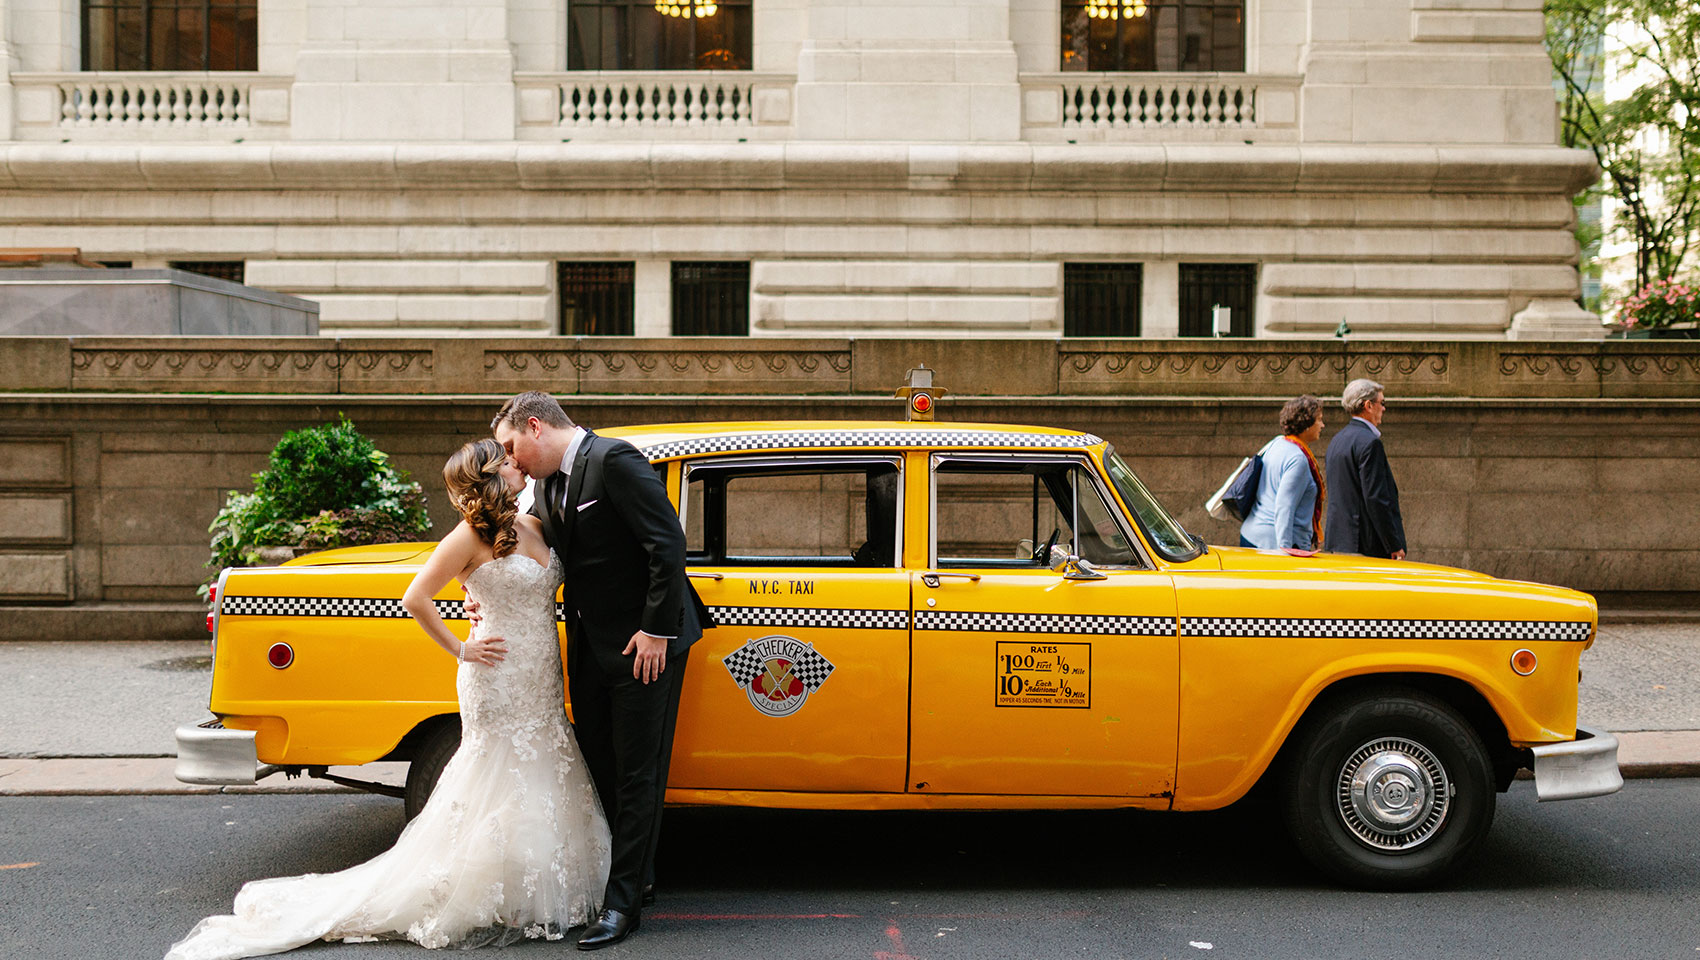 April and Daniel kissing in front of a New York city vintage taxi cab